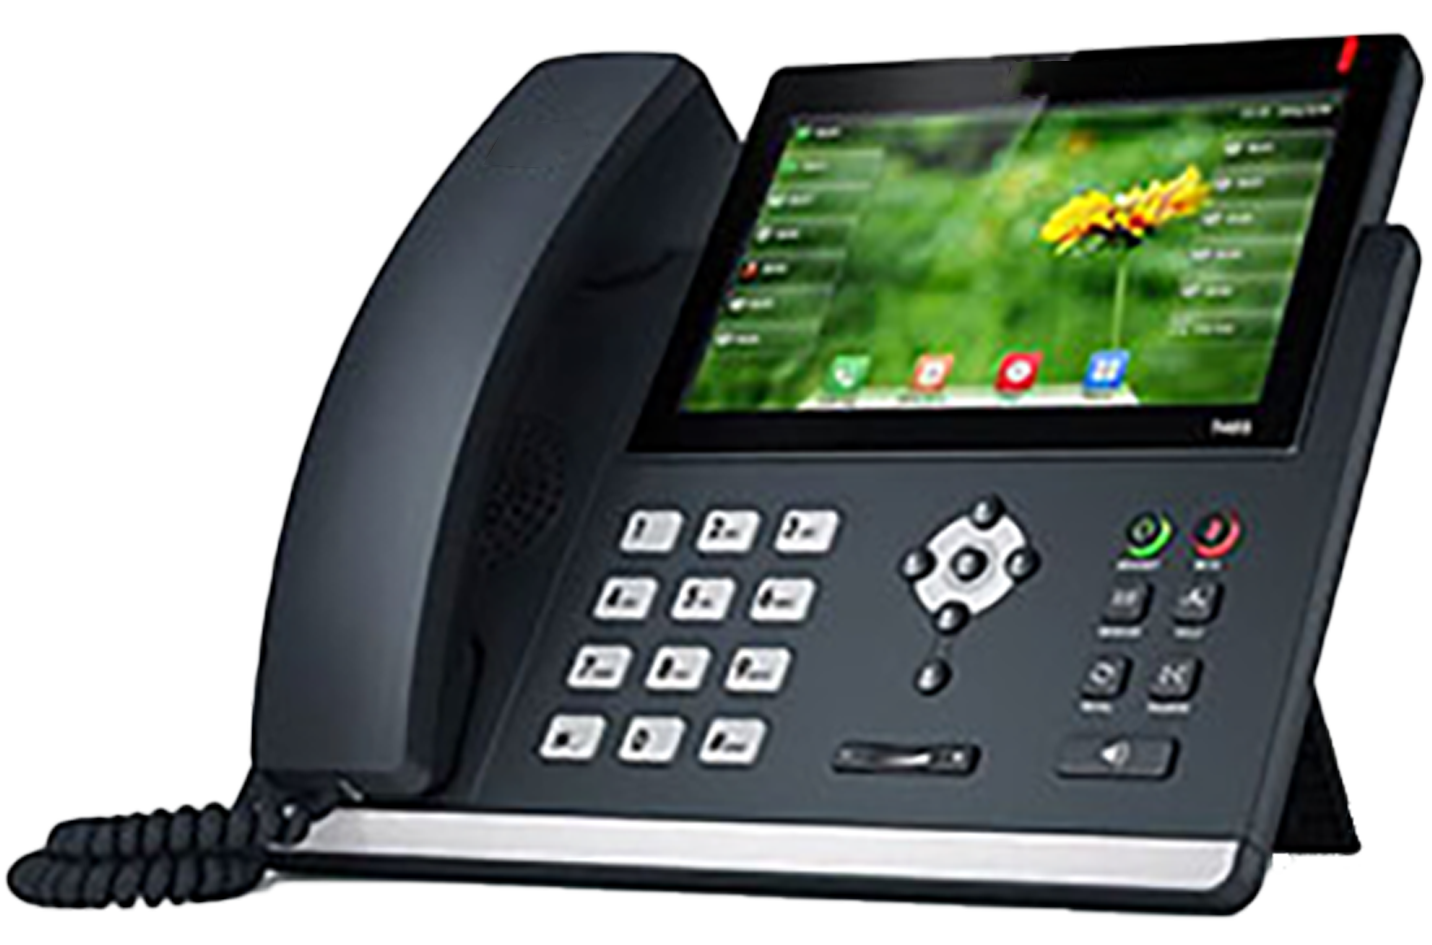 business style phone